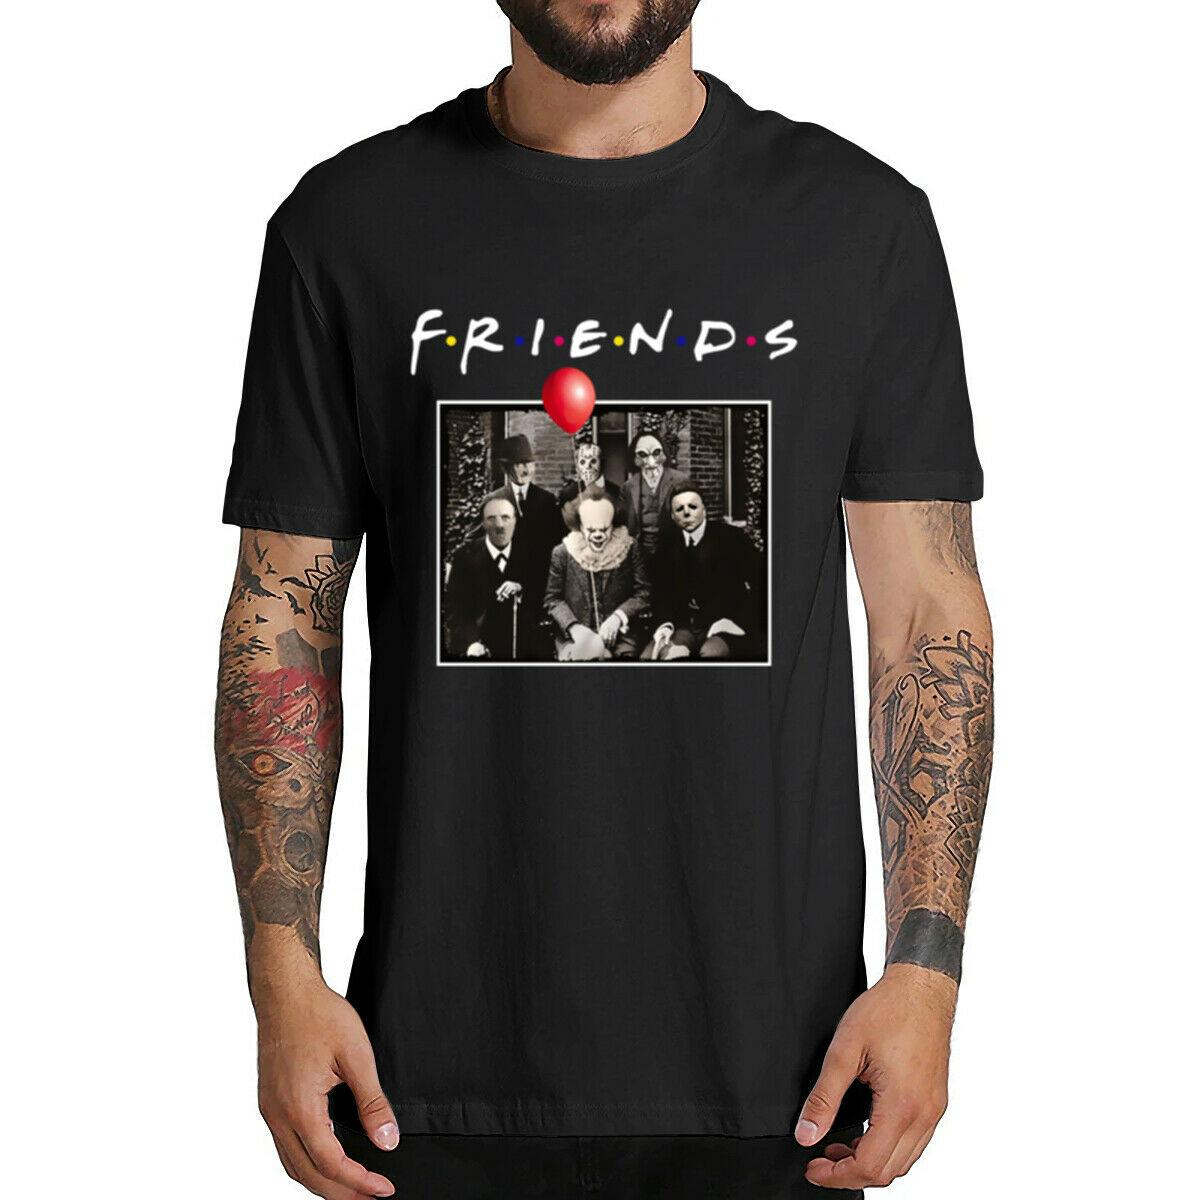 Horreur amis Pennywise Michael Myers Jason Voorhees Halloween hommes T-shirt Top coton à manches courtes T-shirt Camiseta Masculina